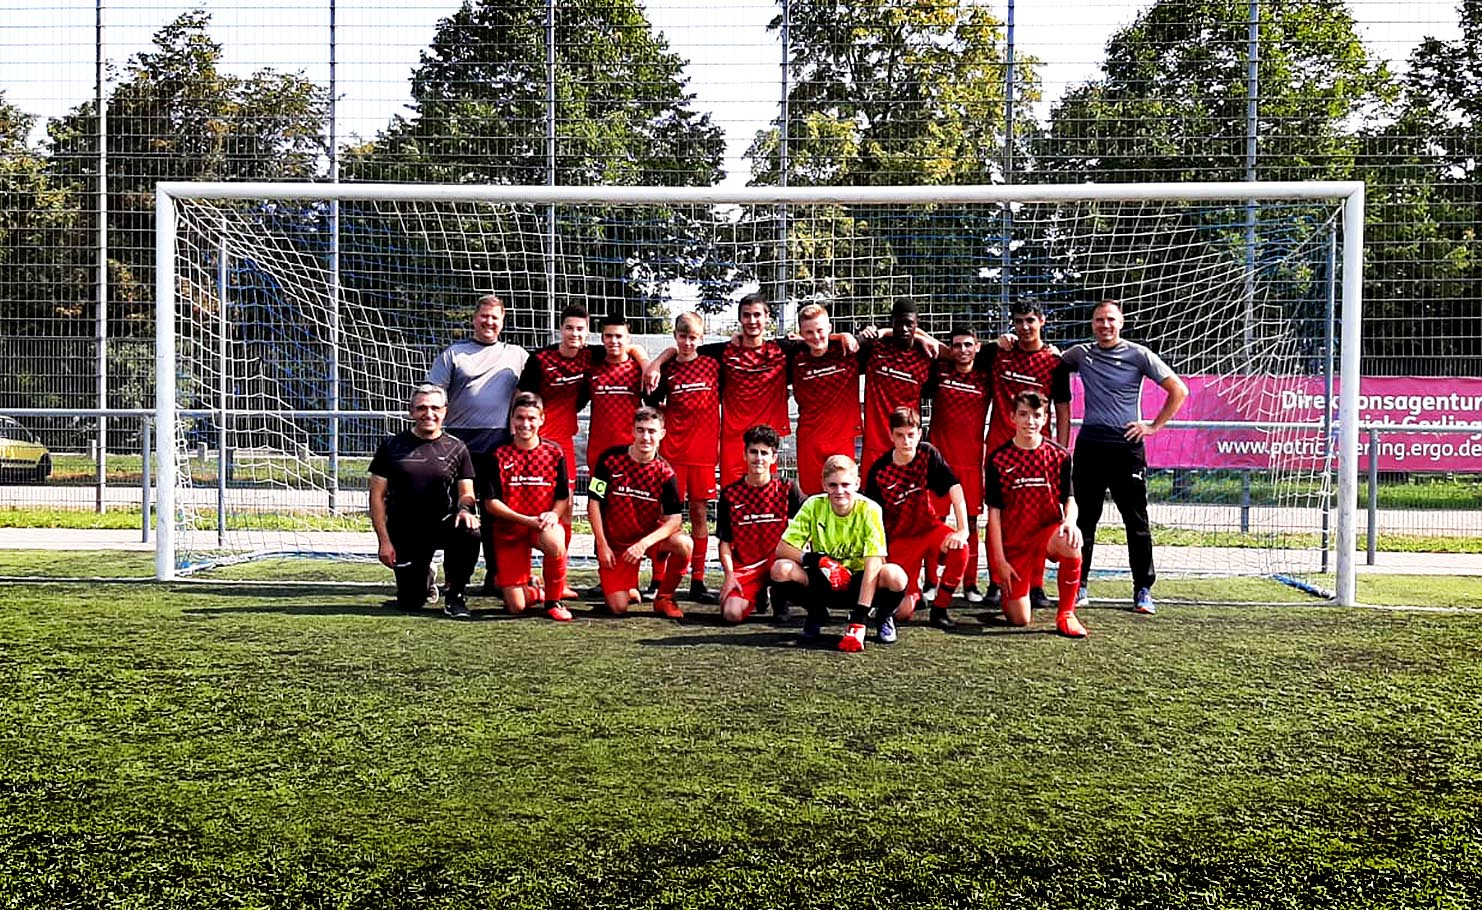 B-JUGEND TuS Hochheim 2021/22, Trainer: Daniel Nultsch, Andreas Seluga